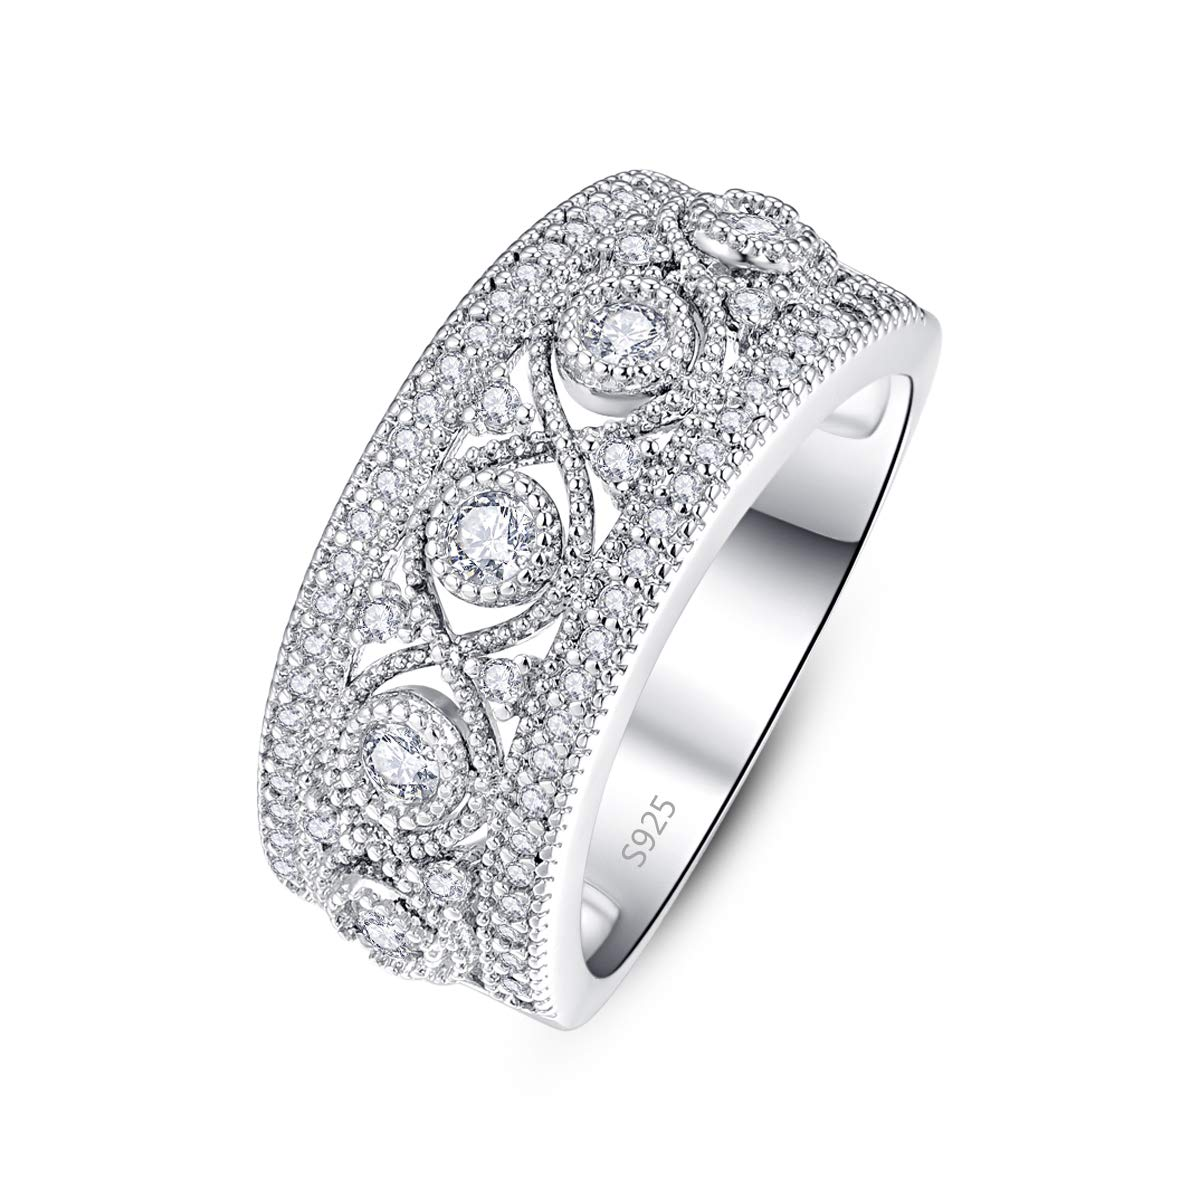 Momius 925 Sterling Silver Round Cut Cubic Zircon Pave Celtic Knot Band Ring for Girls Women